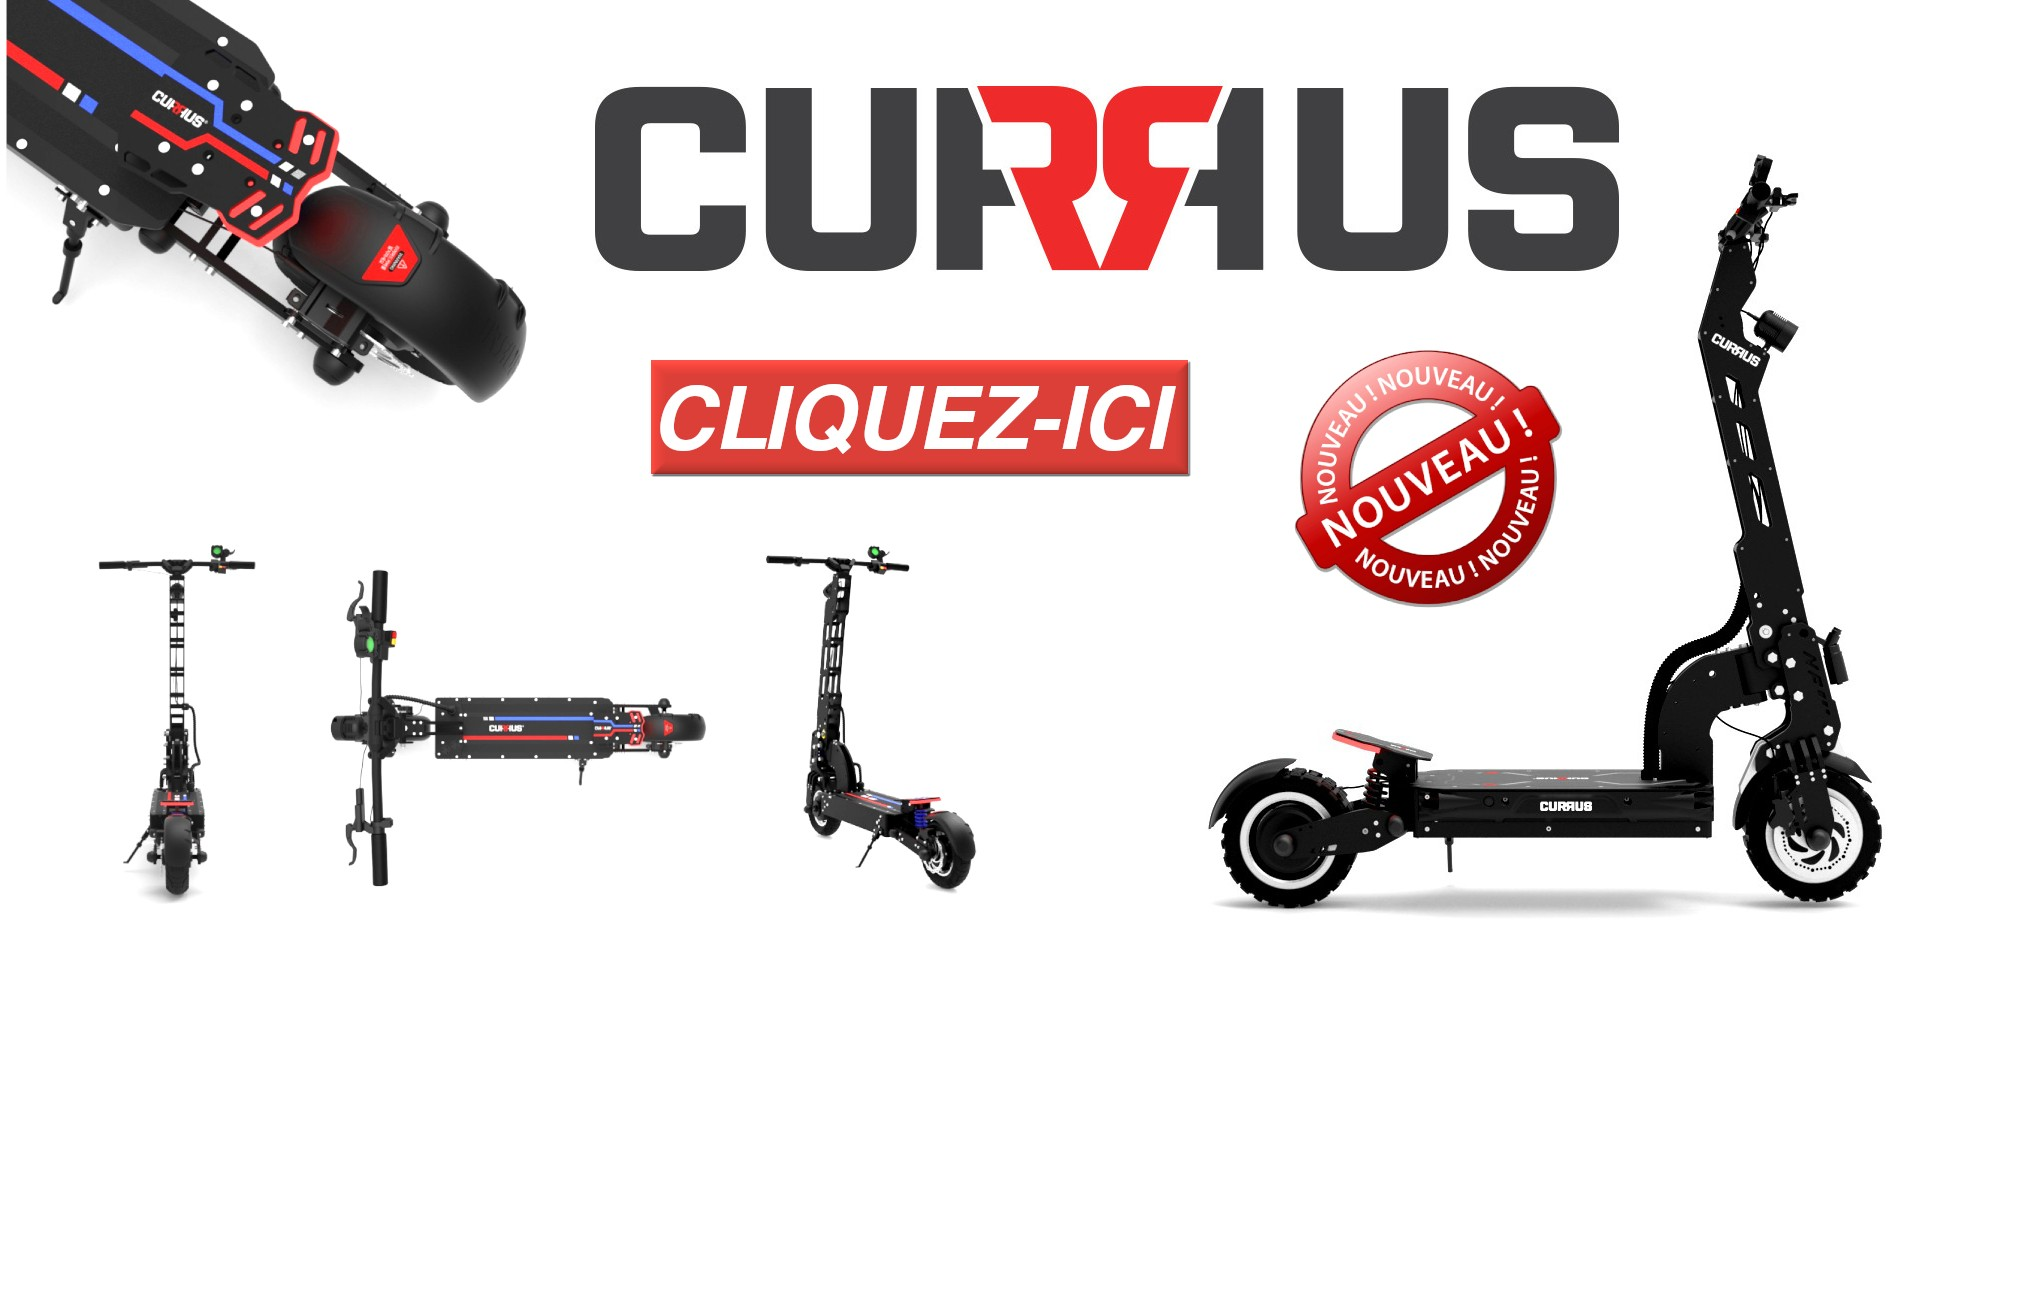 CURRUS NF10 BLACK LABEL & CURRUS NF11 PANTHER